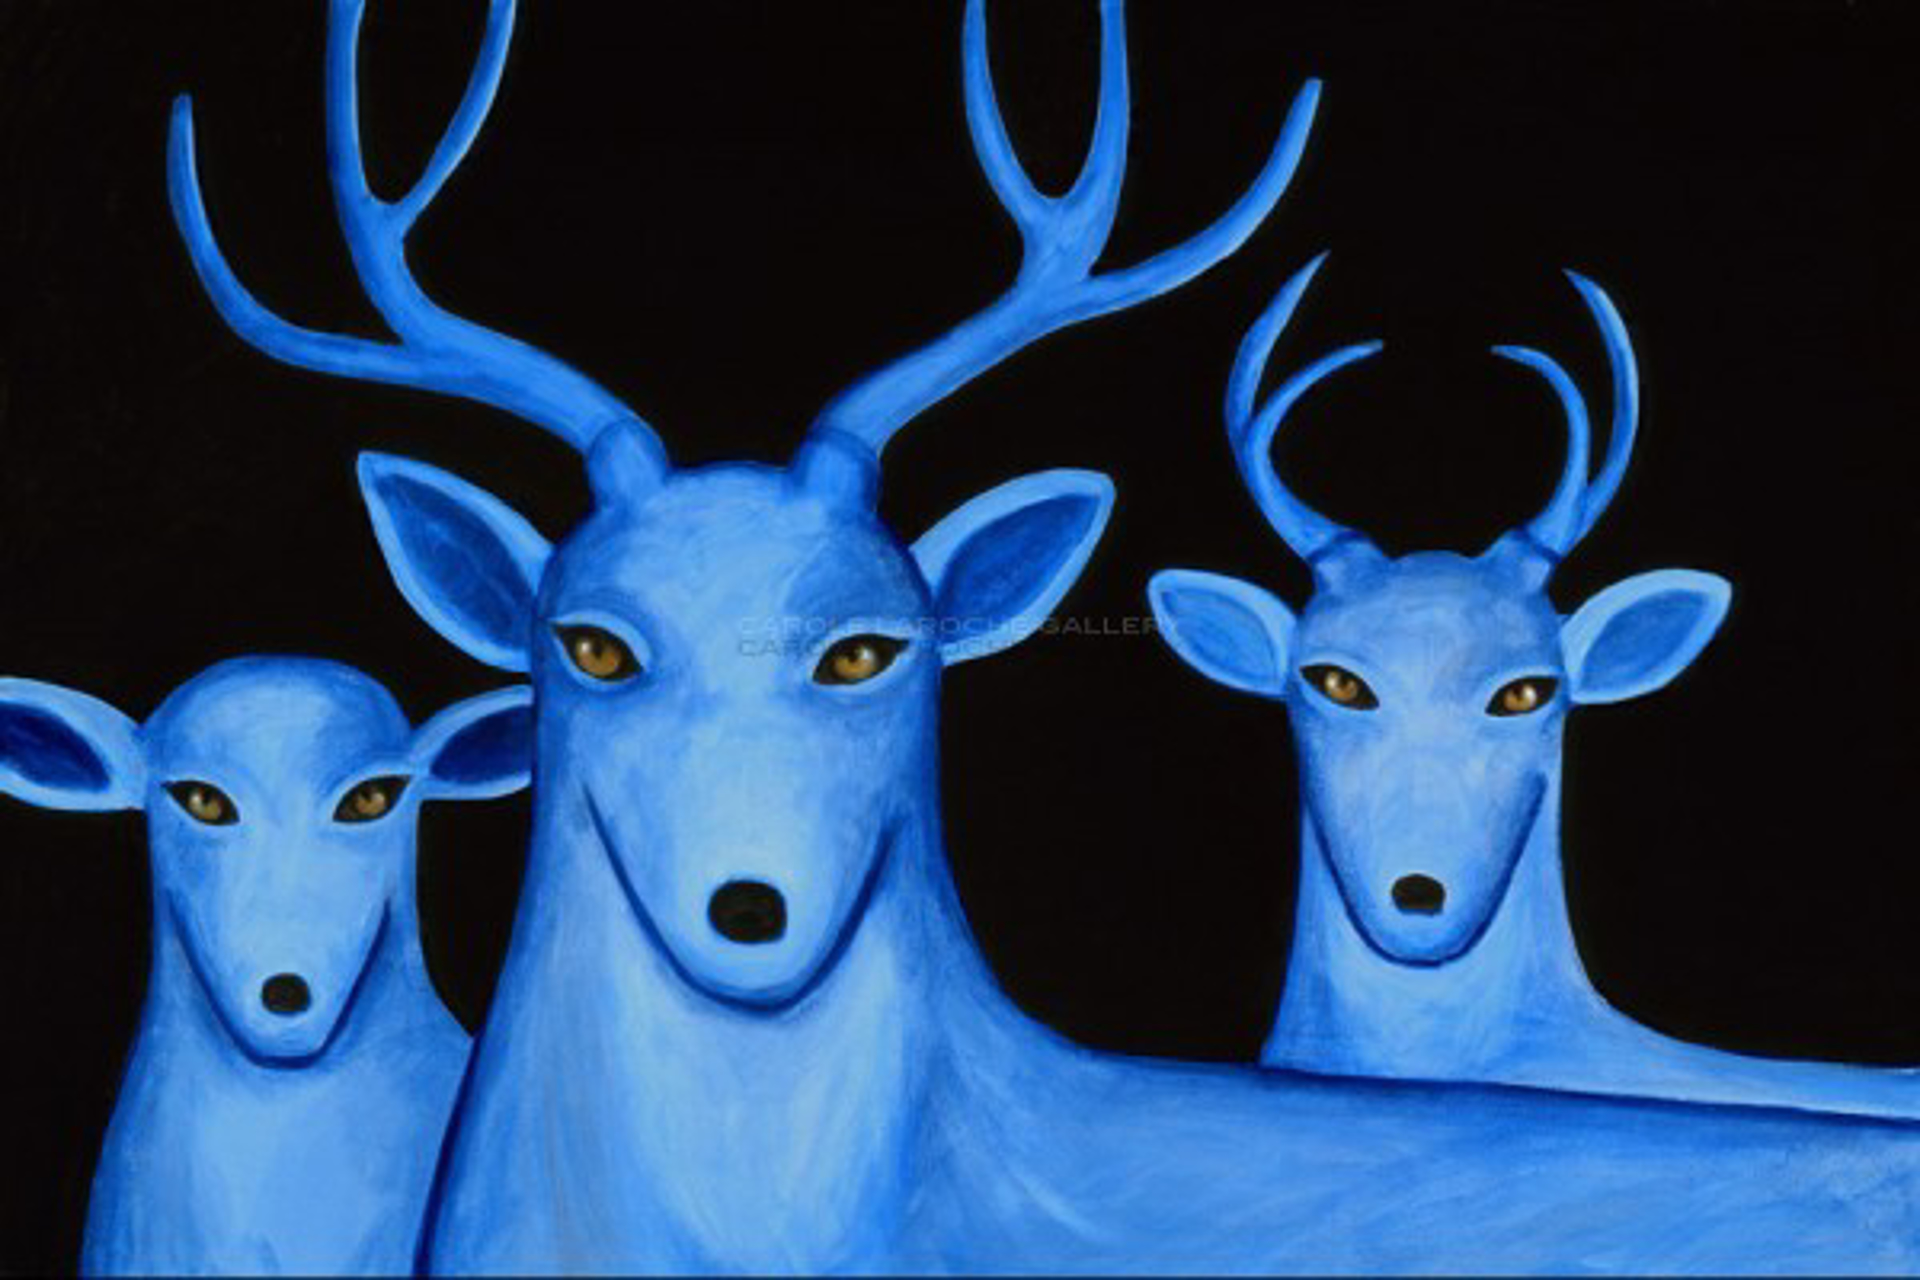 "NIGHT SKY/THREE BLUE DEER - limited edition giclee on canvas (large) 40""x60"" $3500 or (medium) 27""x40"" $2200 or on paper w/frame size of: (large) 40""x60"" $3700 or (medium) 27""x40"" $2200  by Carole LaRoche"